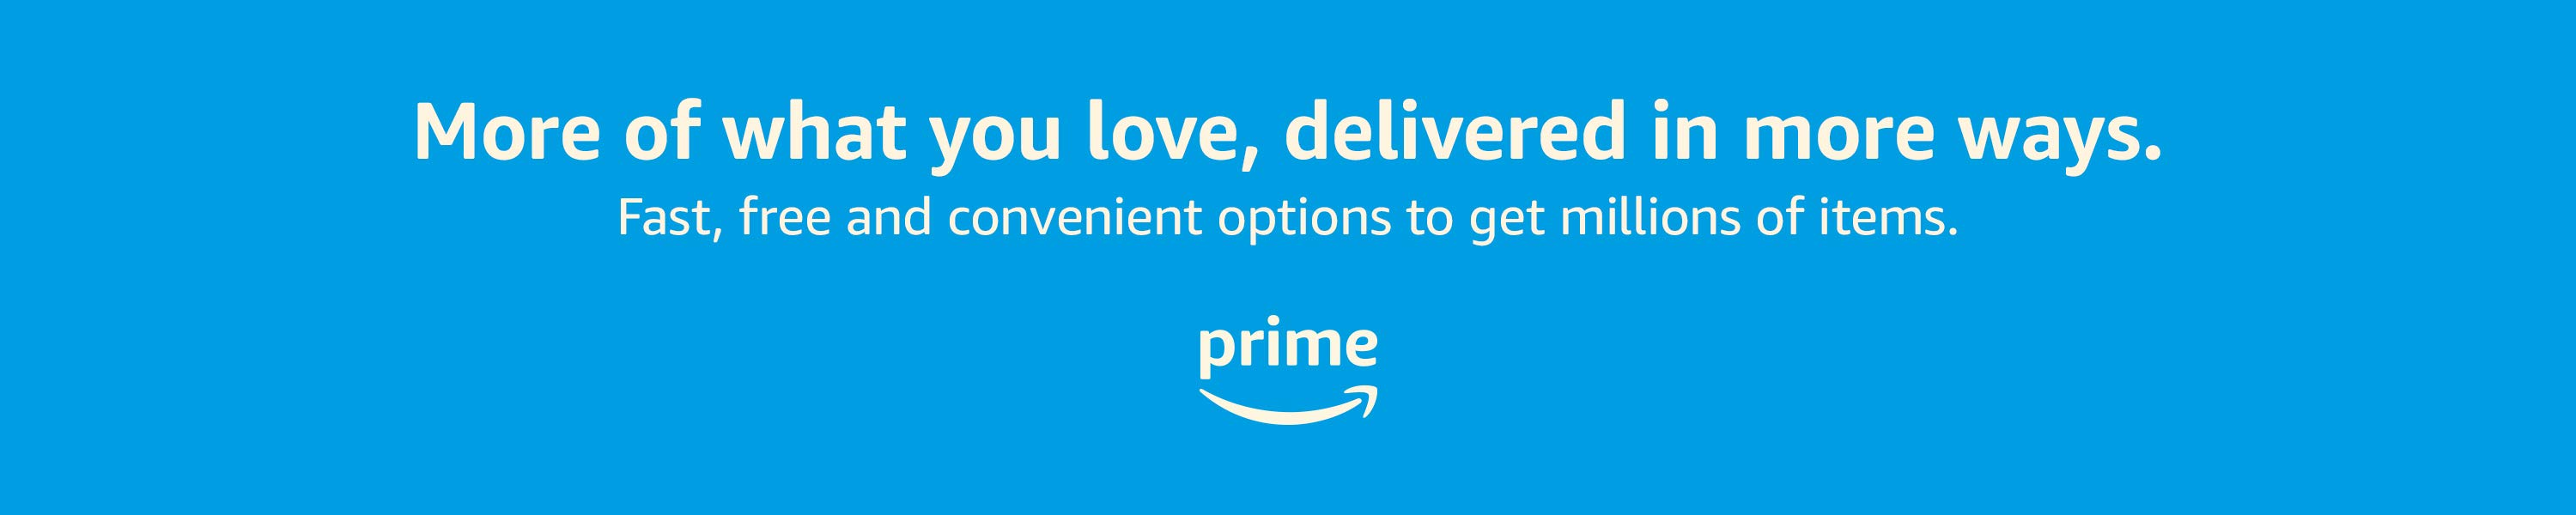 Prime Delivery - Fast, free, and convenient ways to get millions of items.